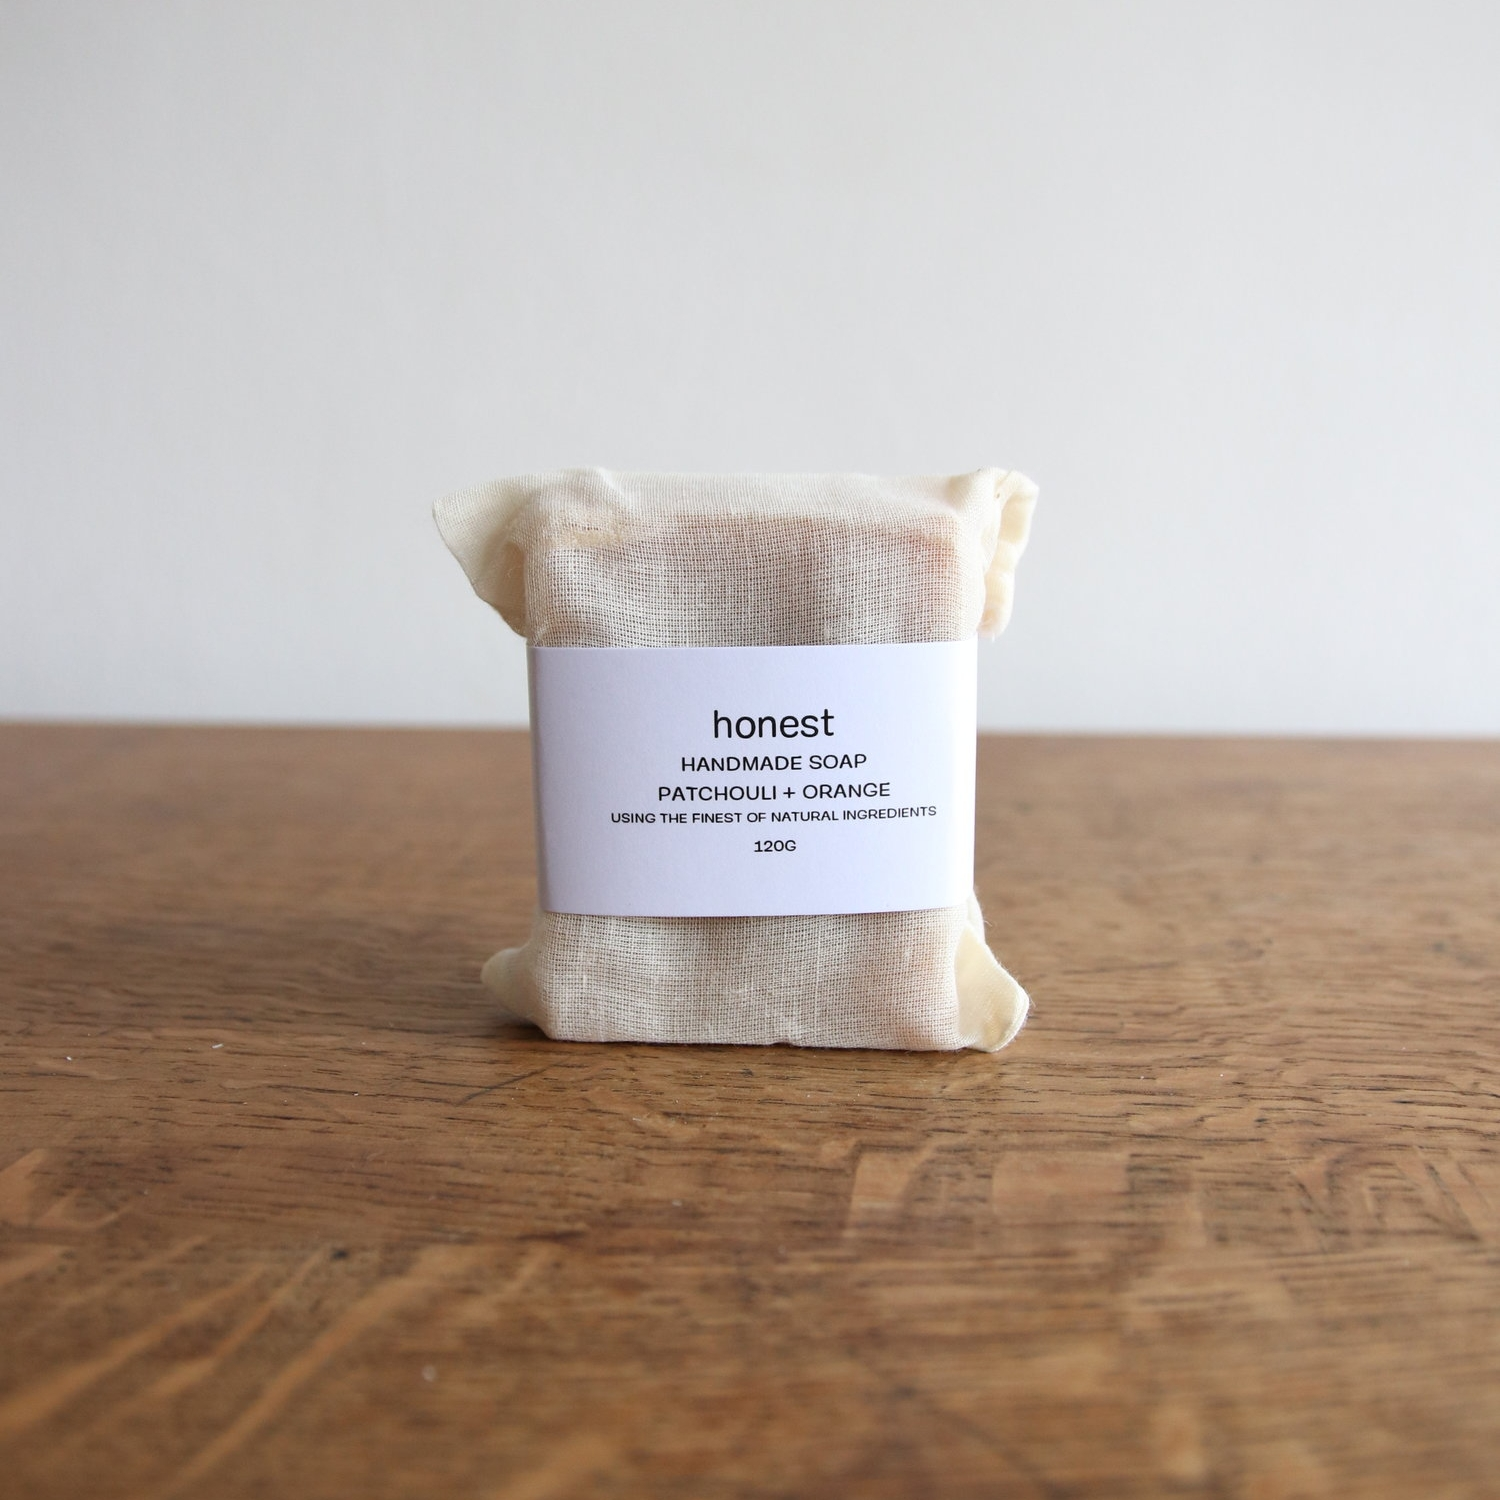 honest Patchouli + Orange soap,  £12,  Buy now